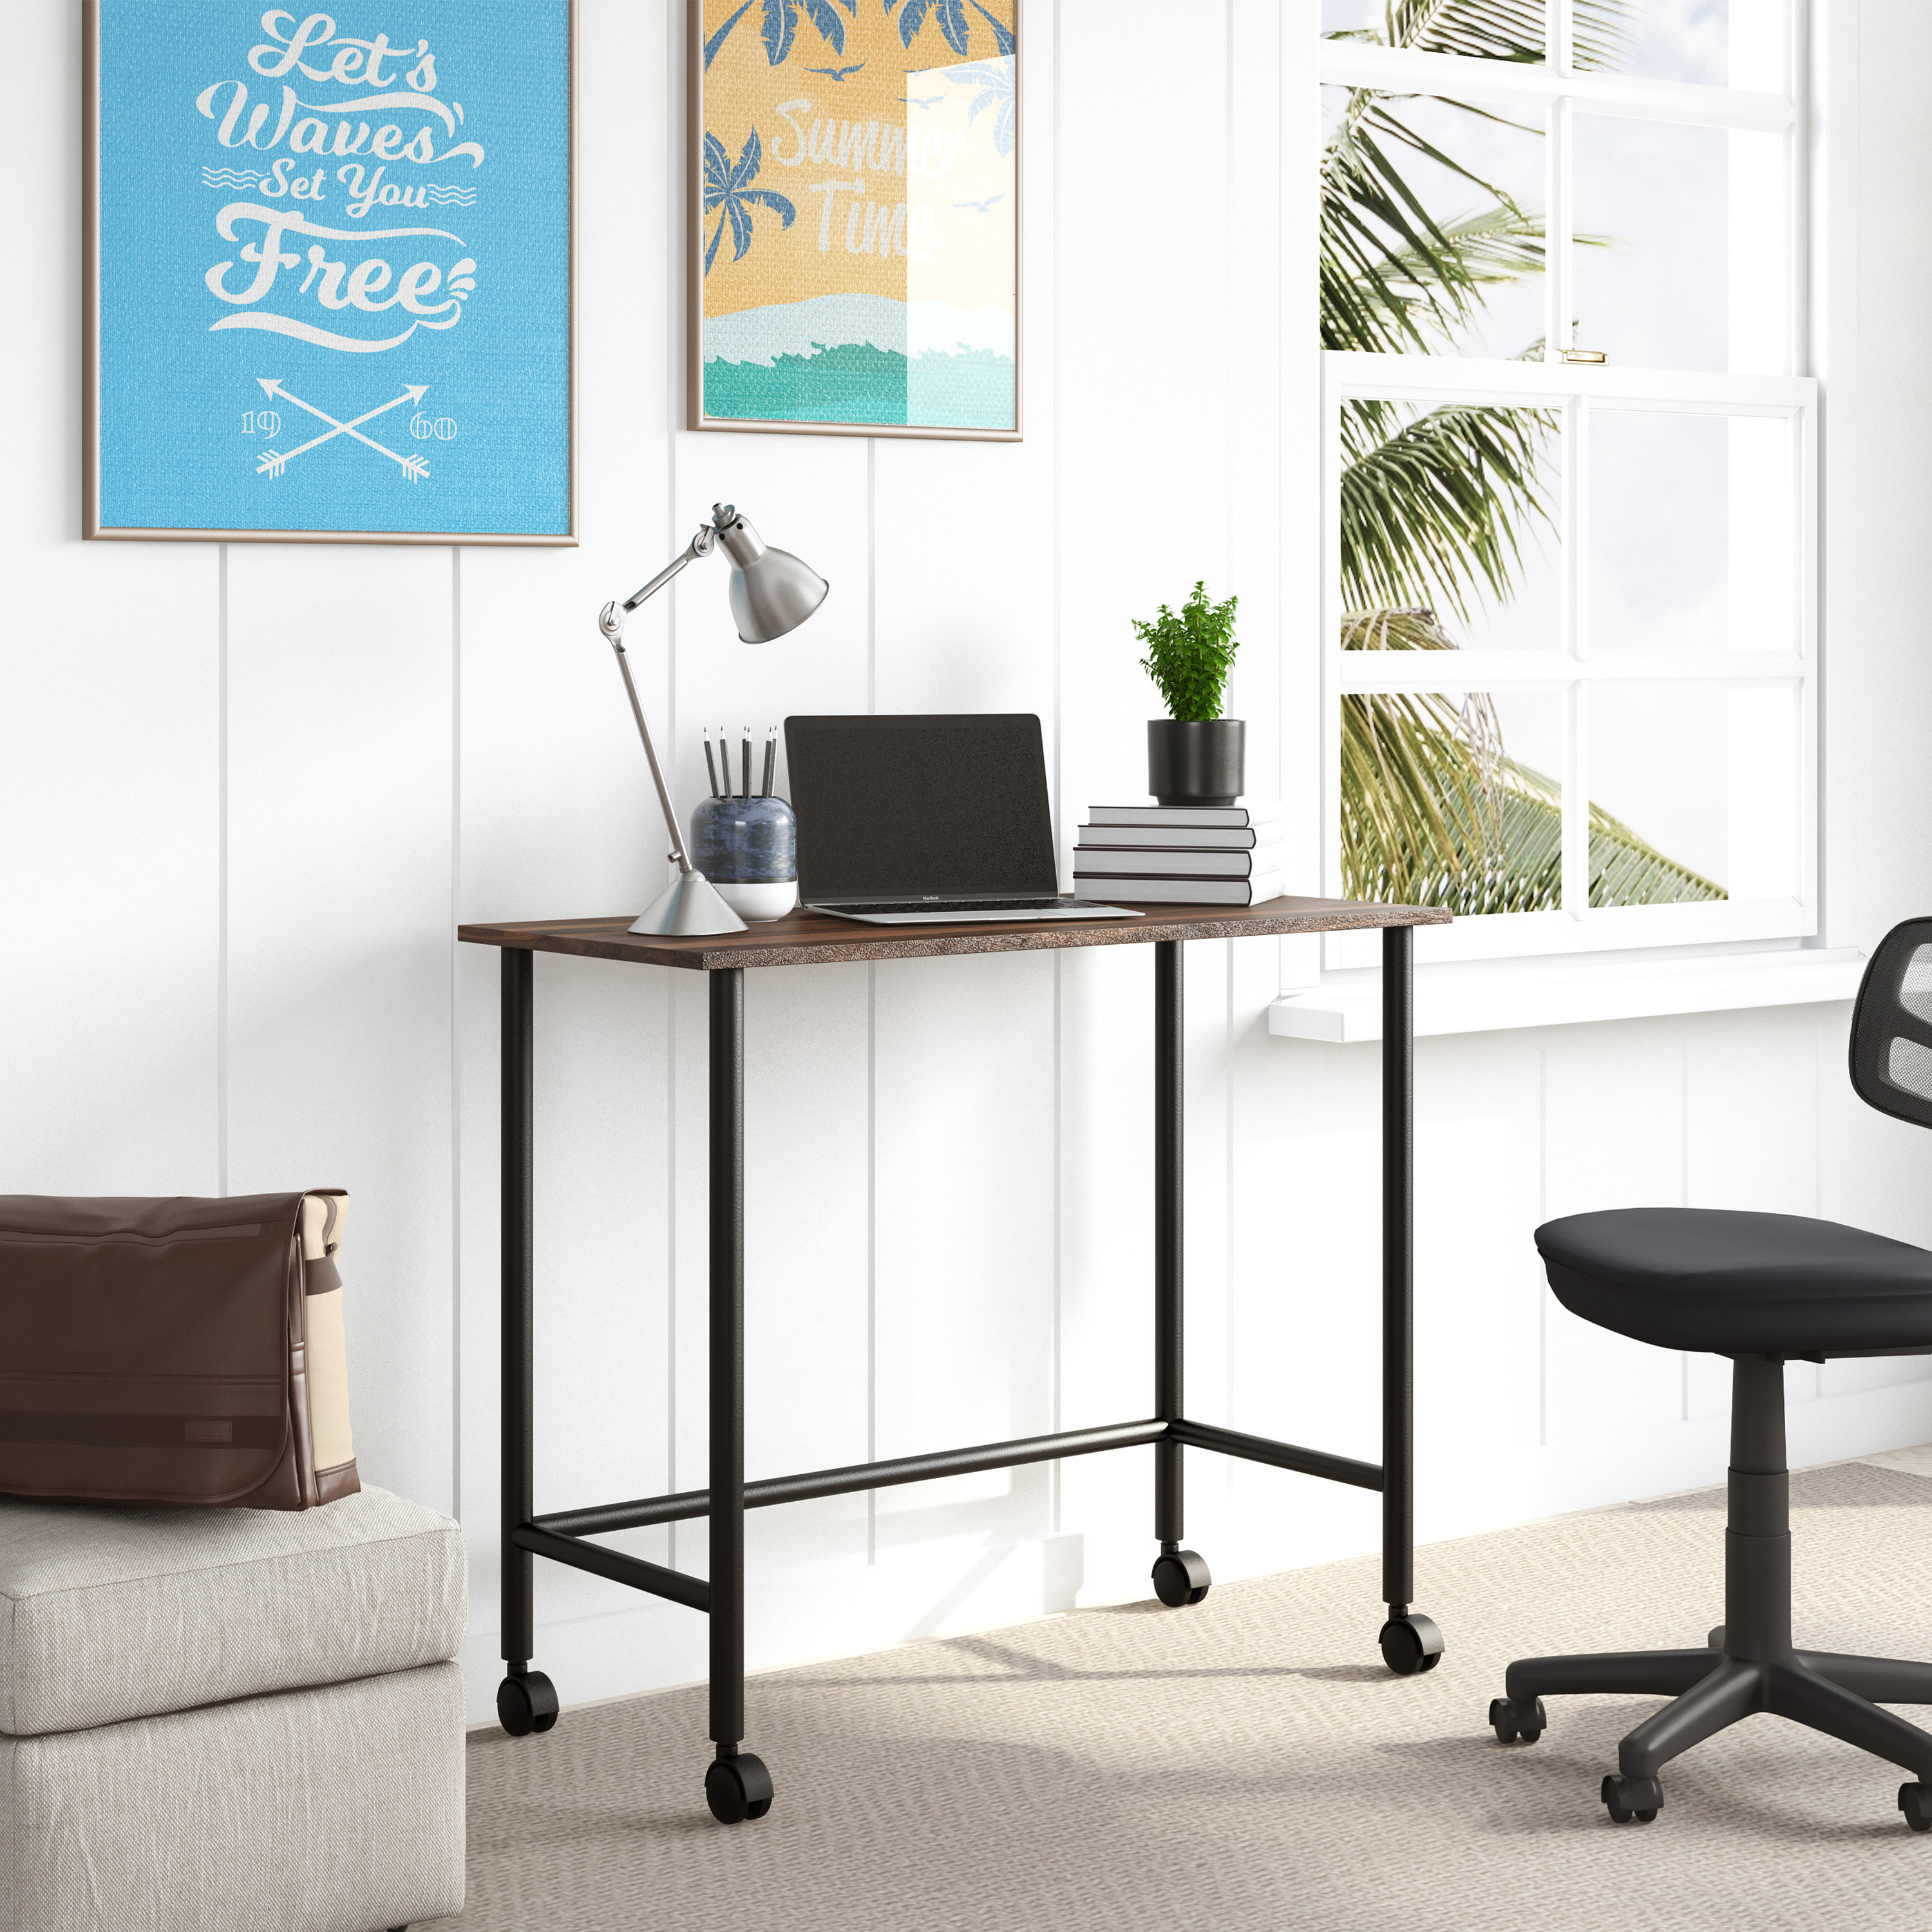 a rolling writing desk with a wooden top and metal legs